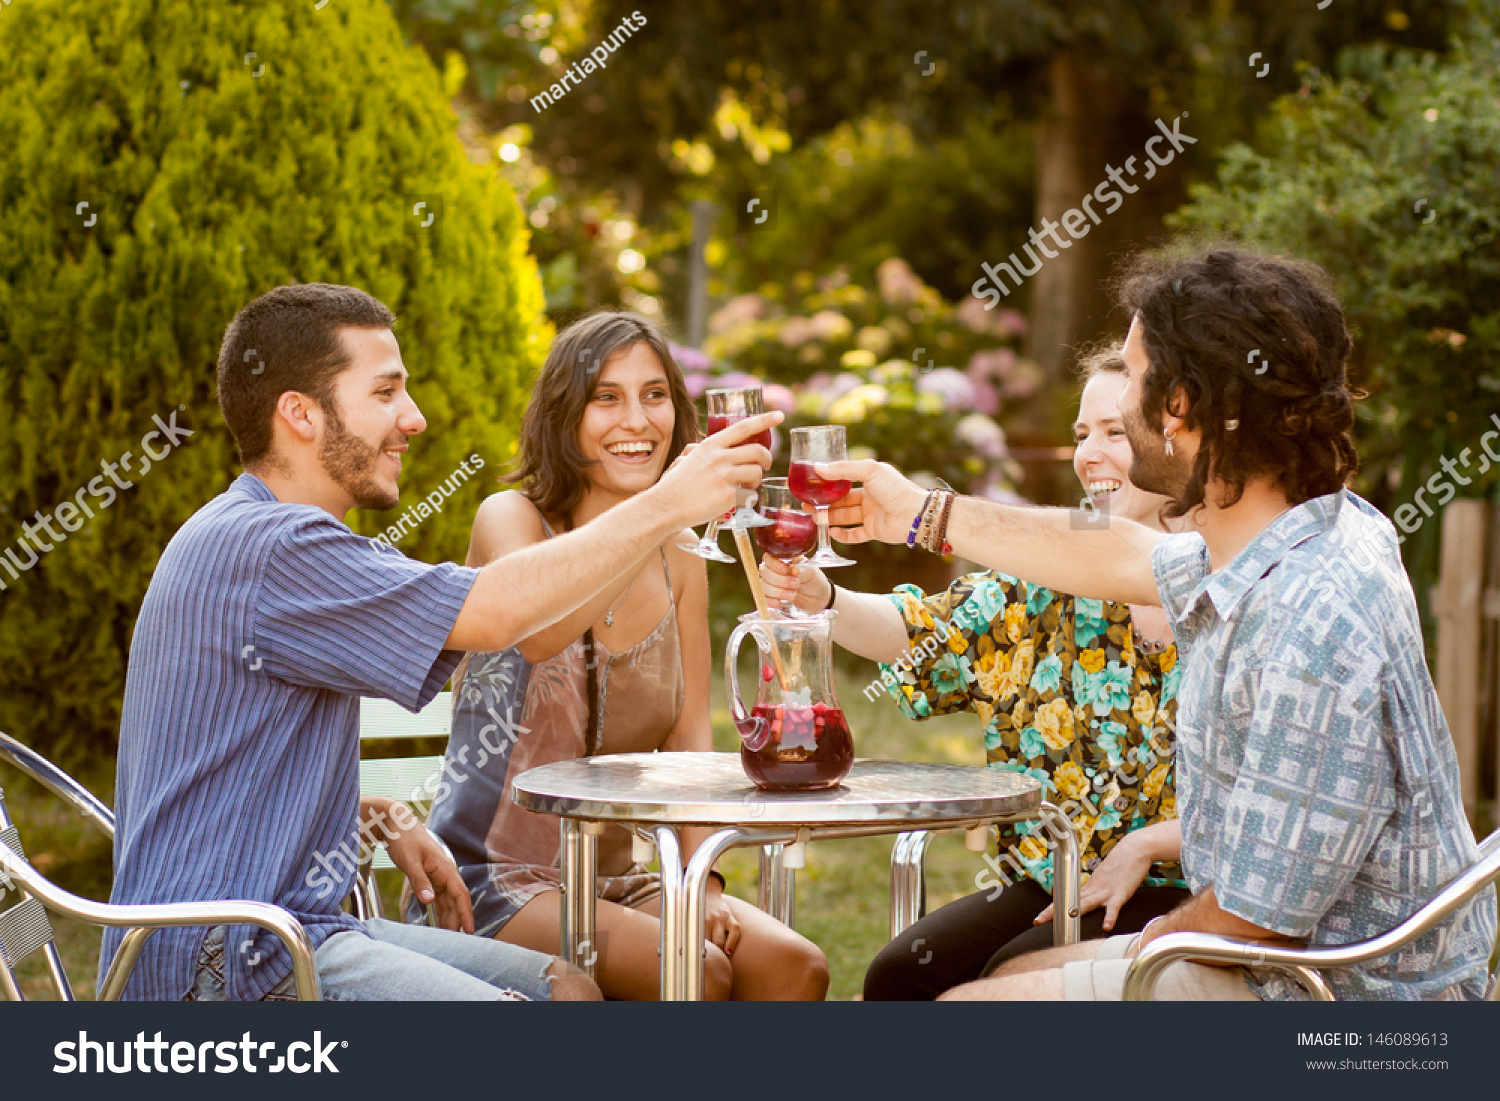 Group of friends having a toast with sangria on a bar for The terrace group